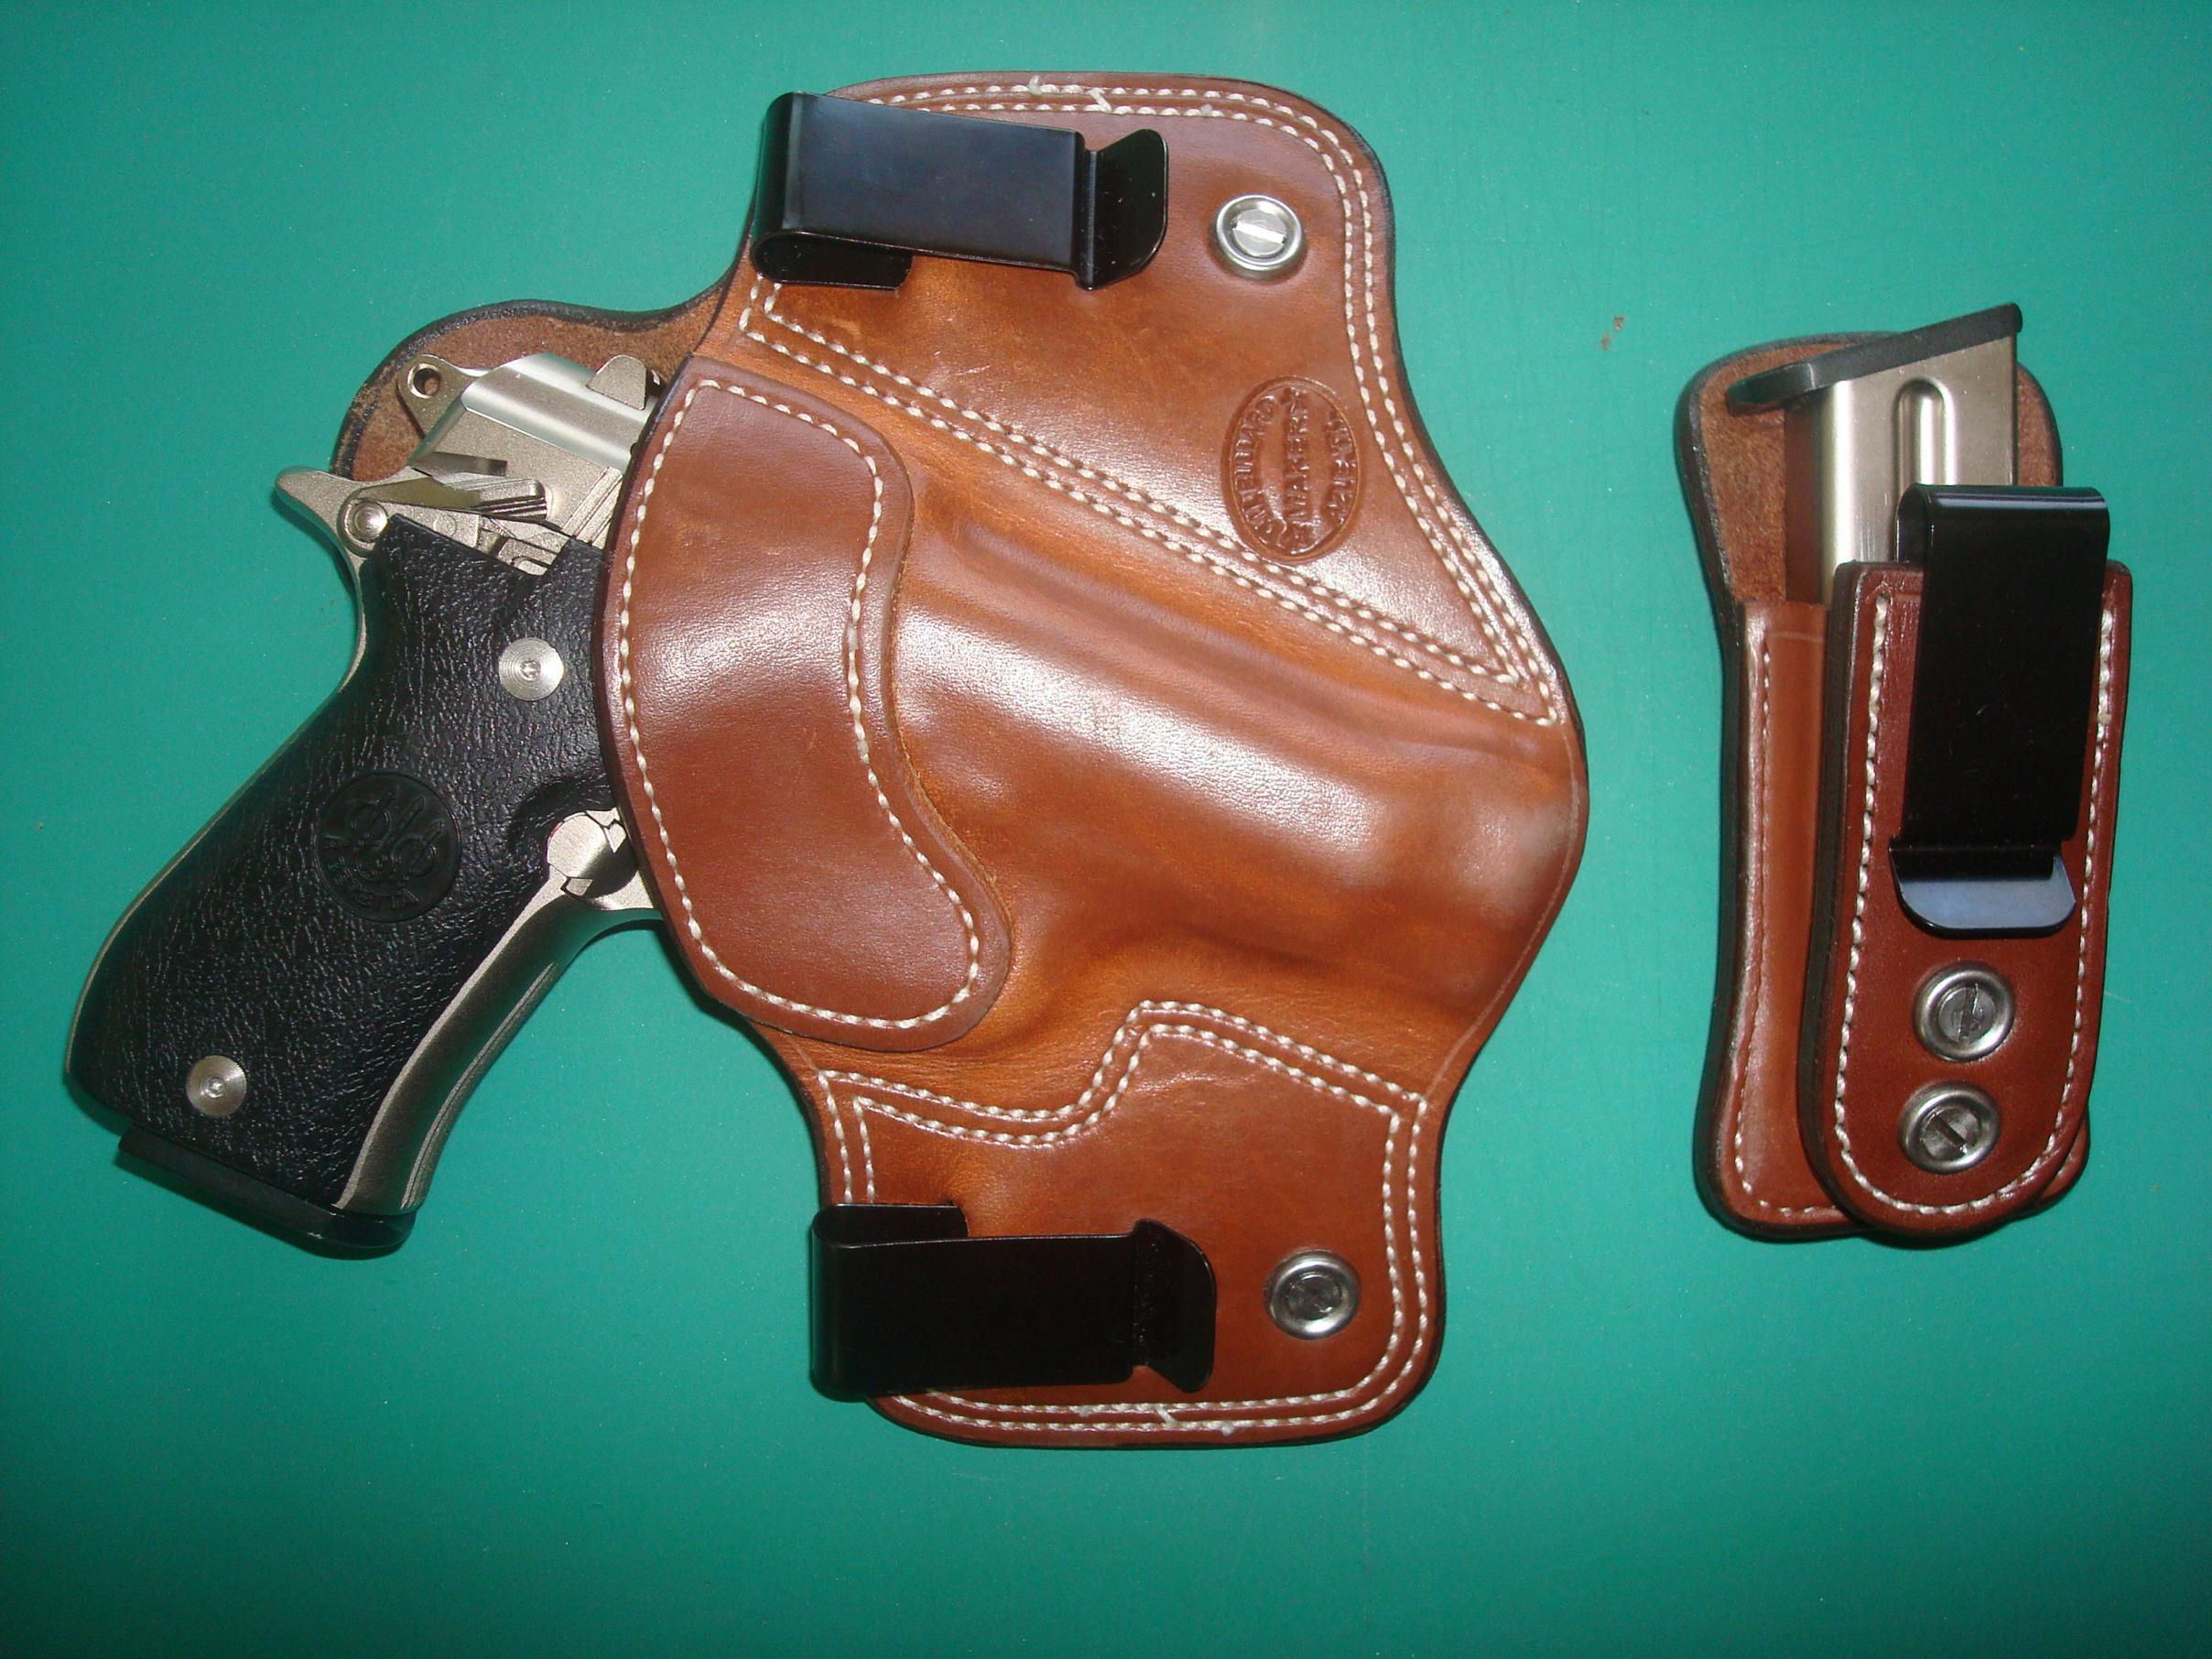 Tuck-able IWB Holster-firearms-002.jpg